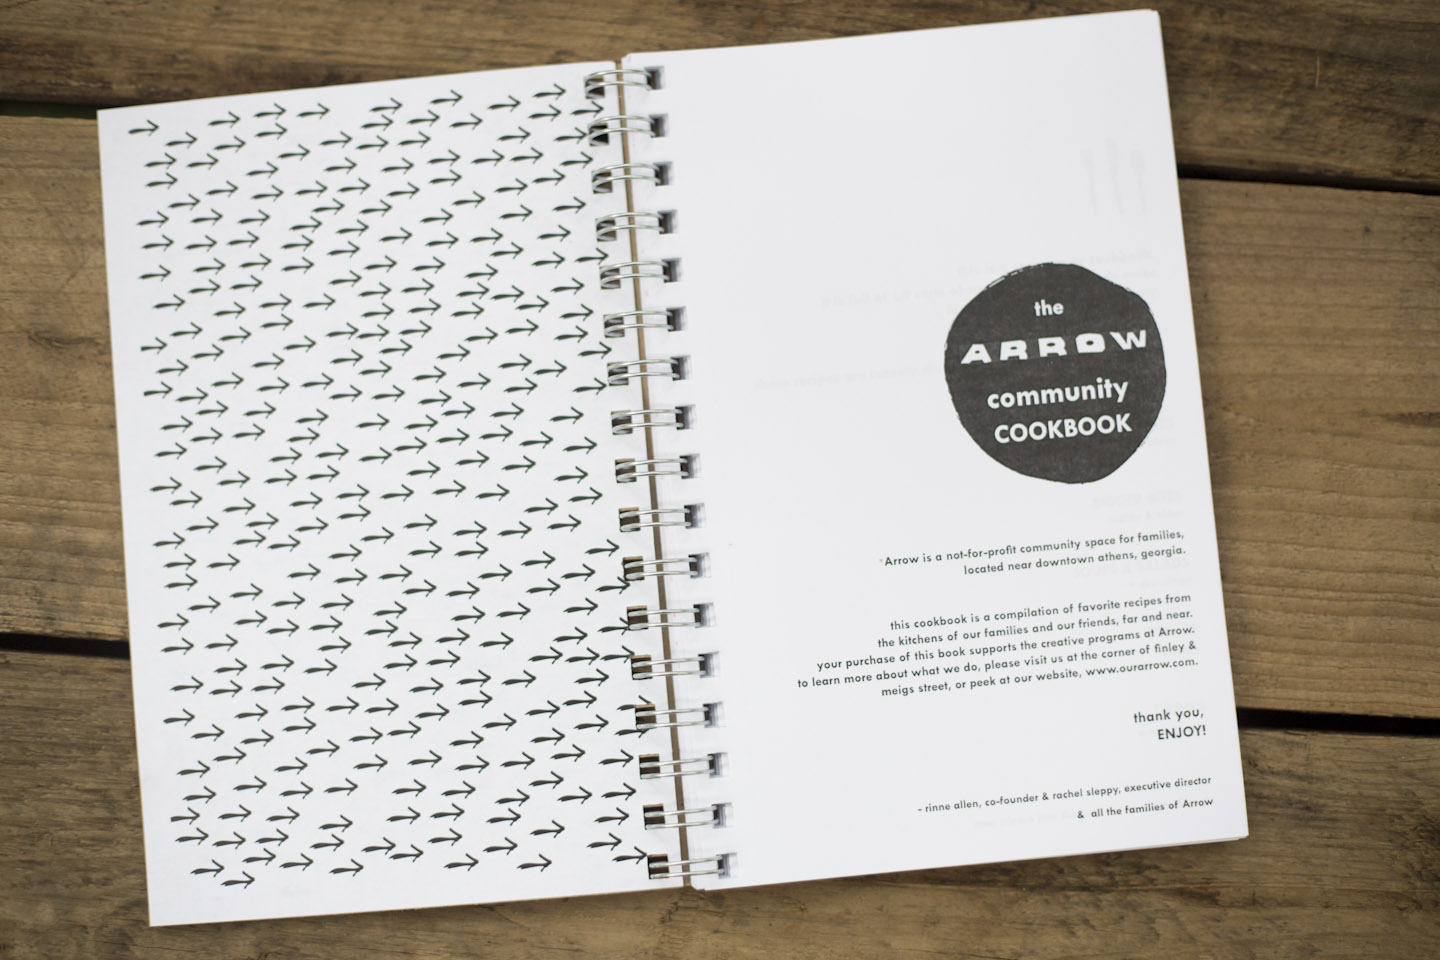 arrow community cookbook-0553.jpg